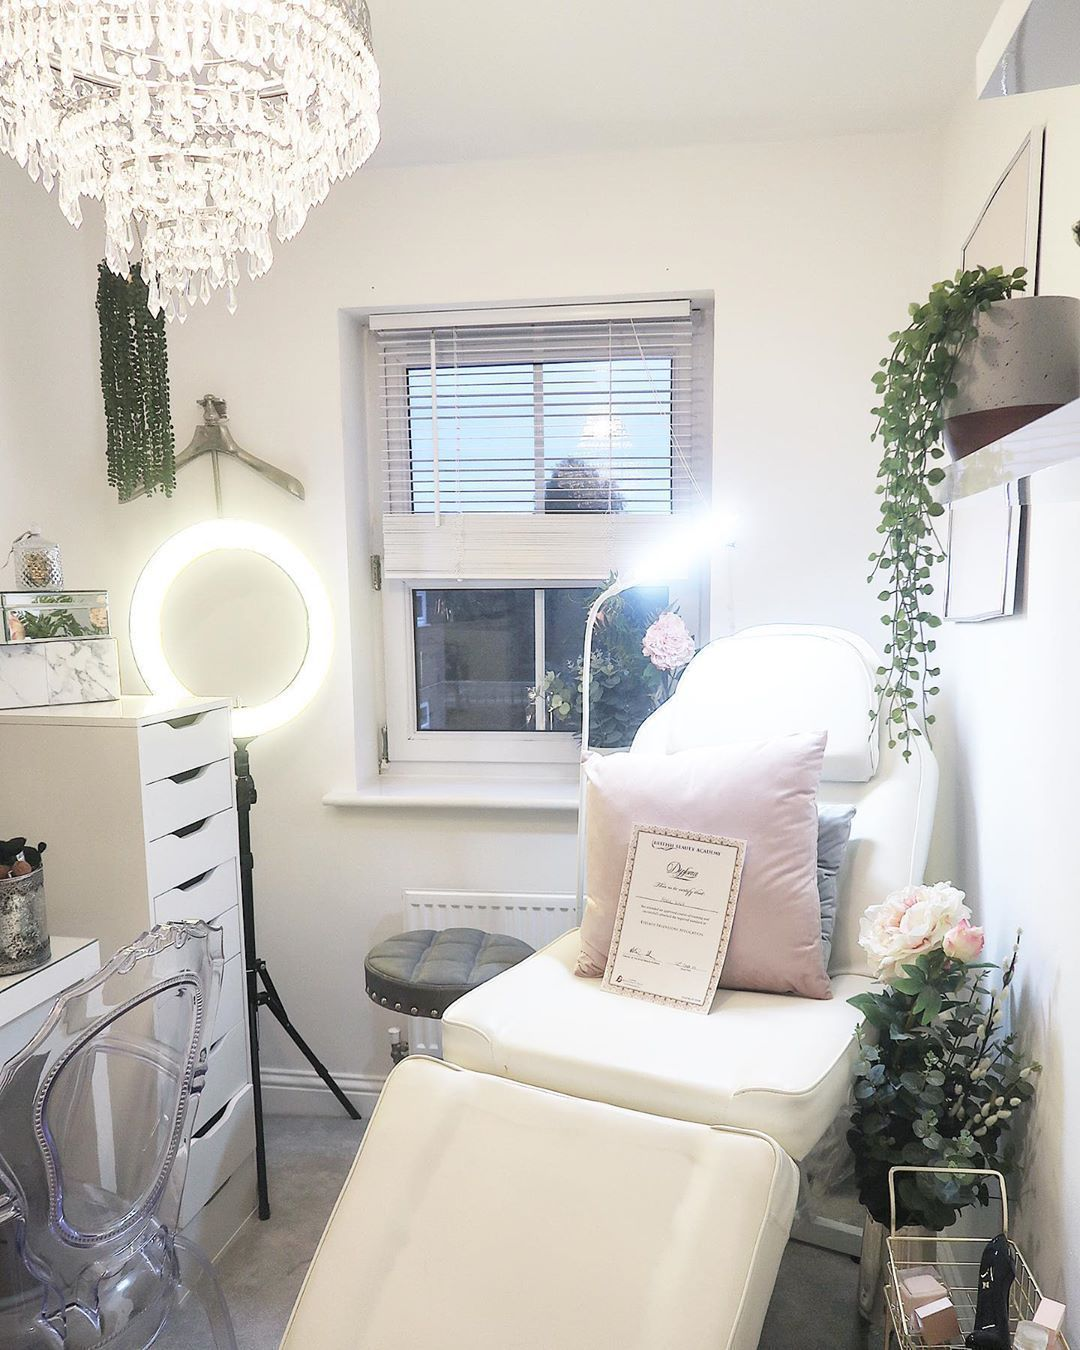 New ring light, stool, decor & over head LED lamp added to my beautiful Lash room! Sill practising as I want to get this to perfection! Signage going up at the weekend I can not wait!  New ring light, stool, decor & over head LED lamp added to my beautiful Lash room! Sill practising as I want to get this to perfection! Signage going up at the weekend I can not wait! #lashroomdecor New ring light, stool, decor & over head LED lamp added to my beautiful Lash room! Sill practising as I want to get #lashroomdecor